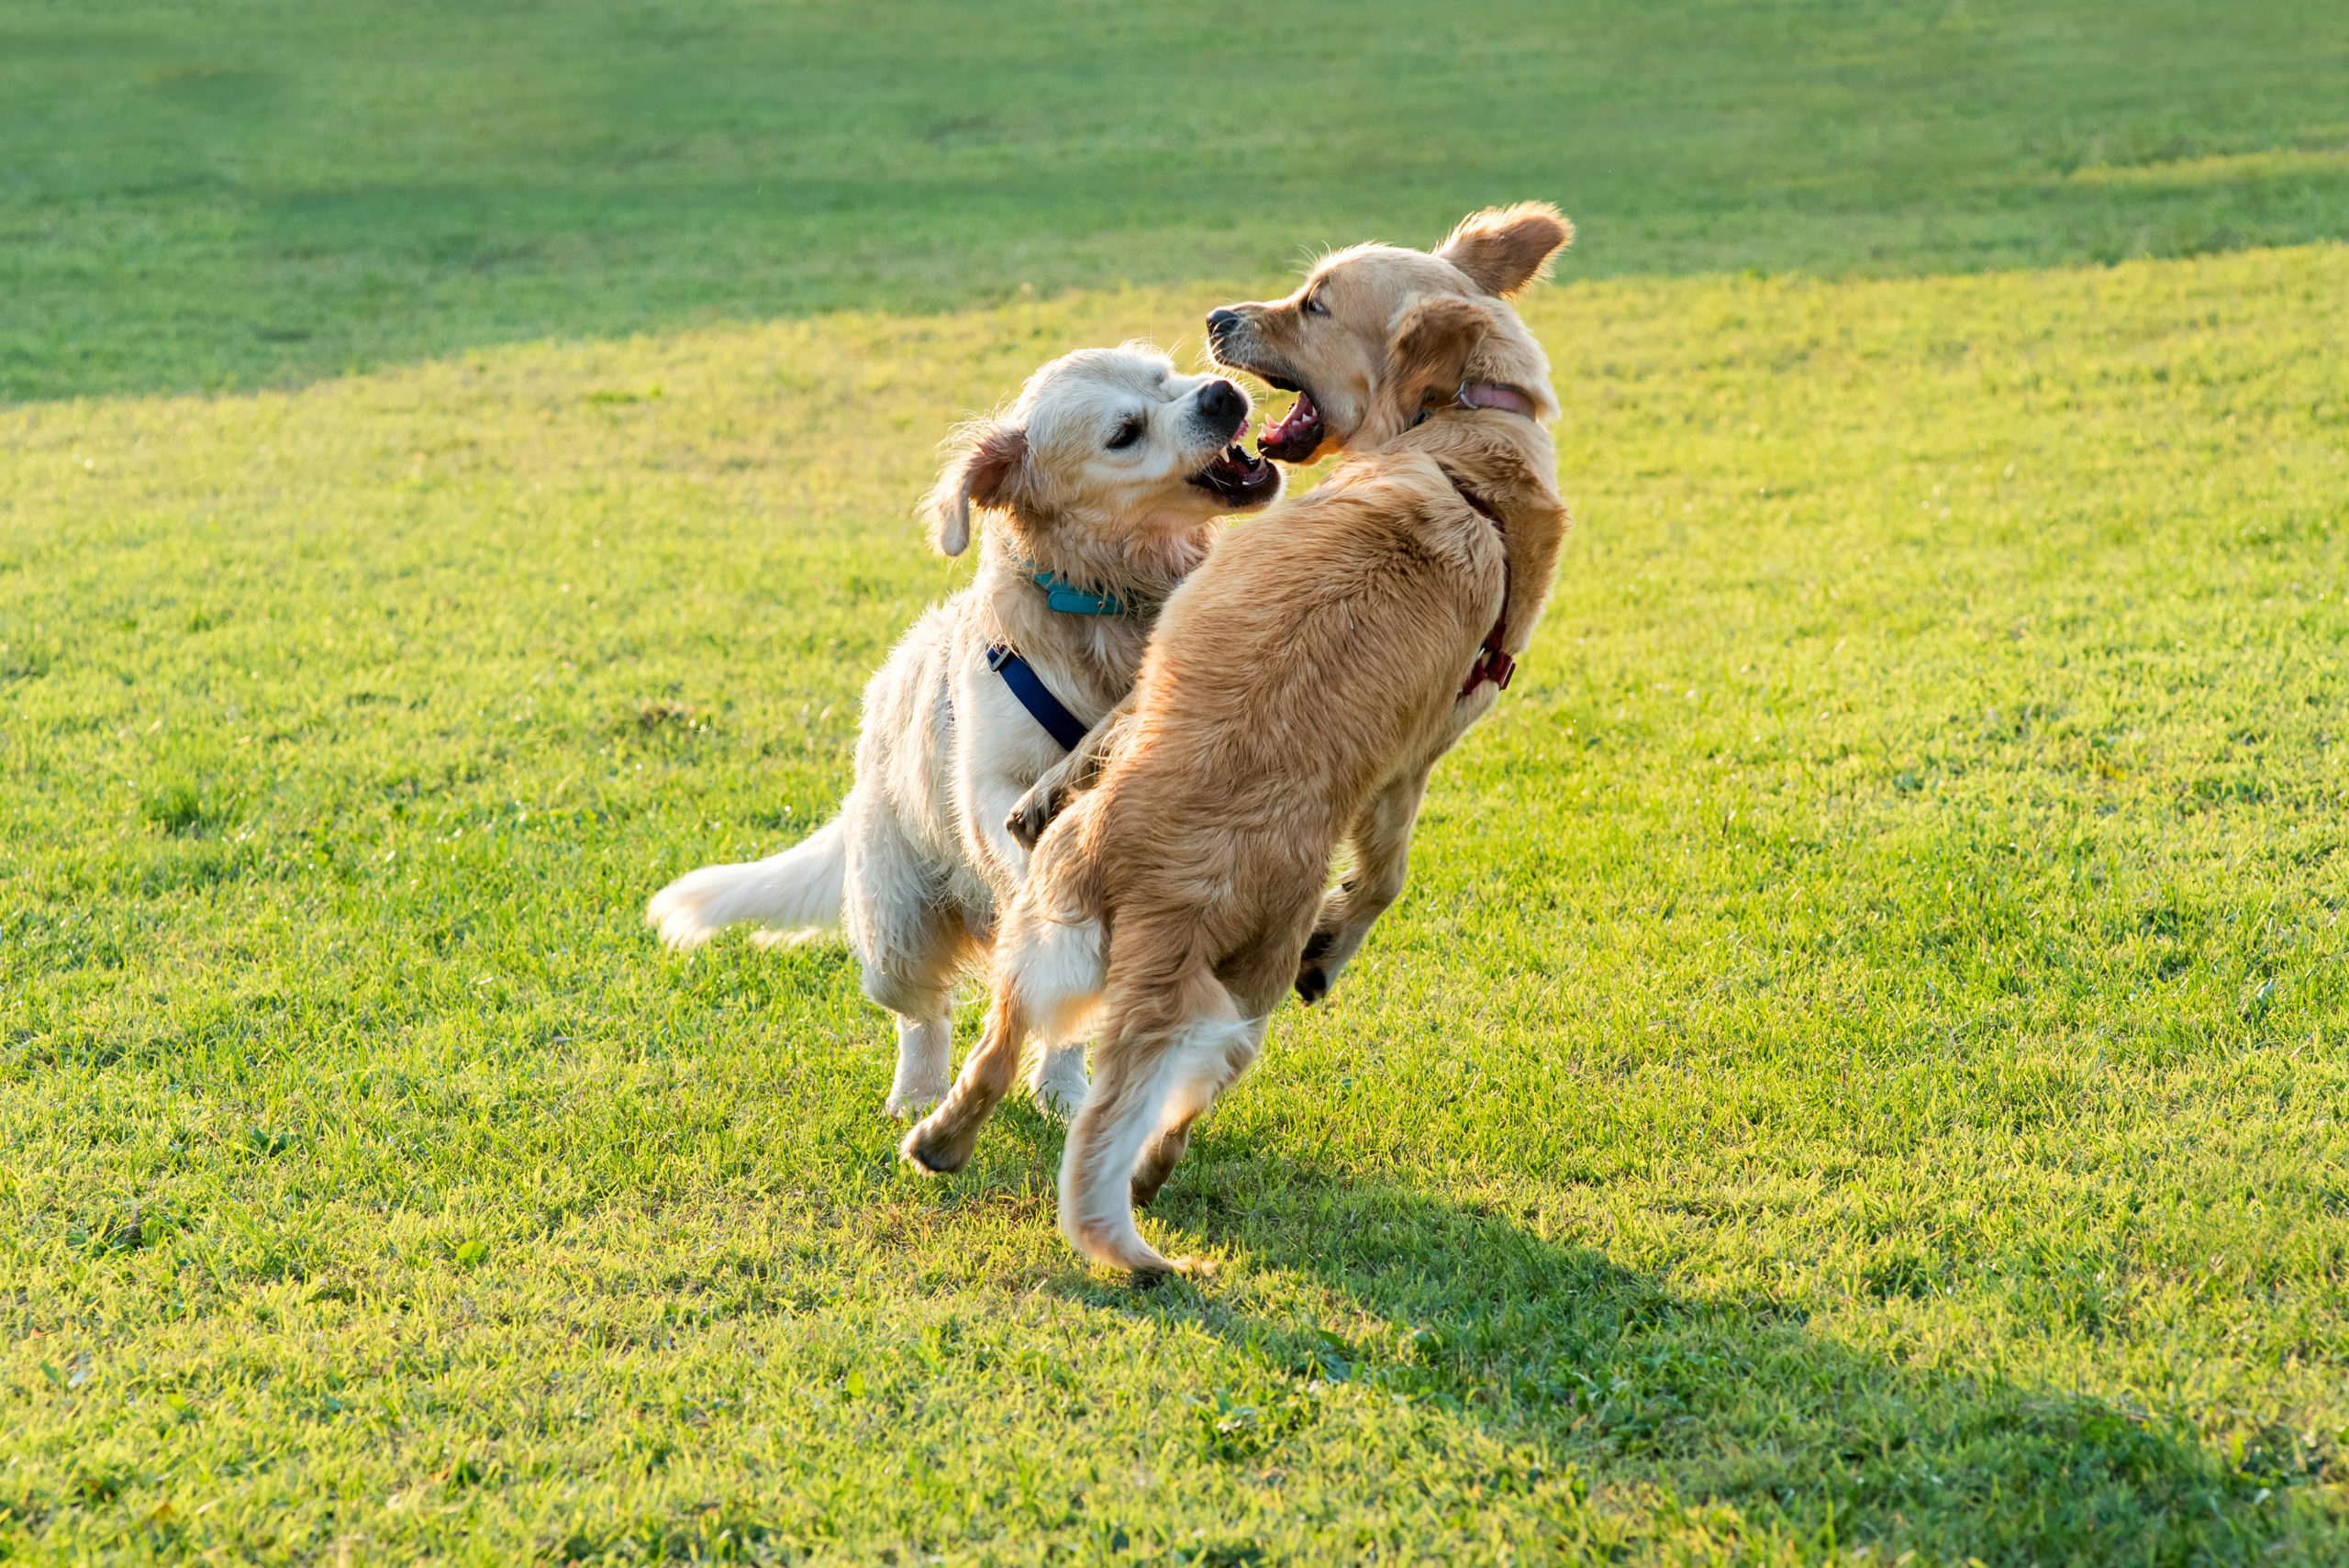 Two happy Golden Retriever dogs playing together, jumping and biting each other